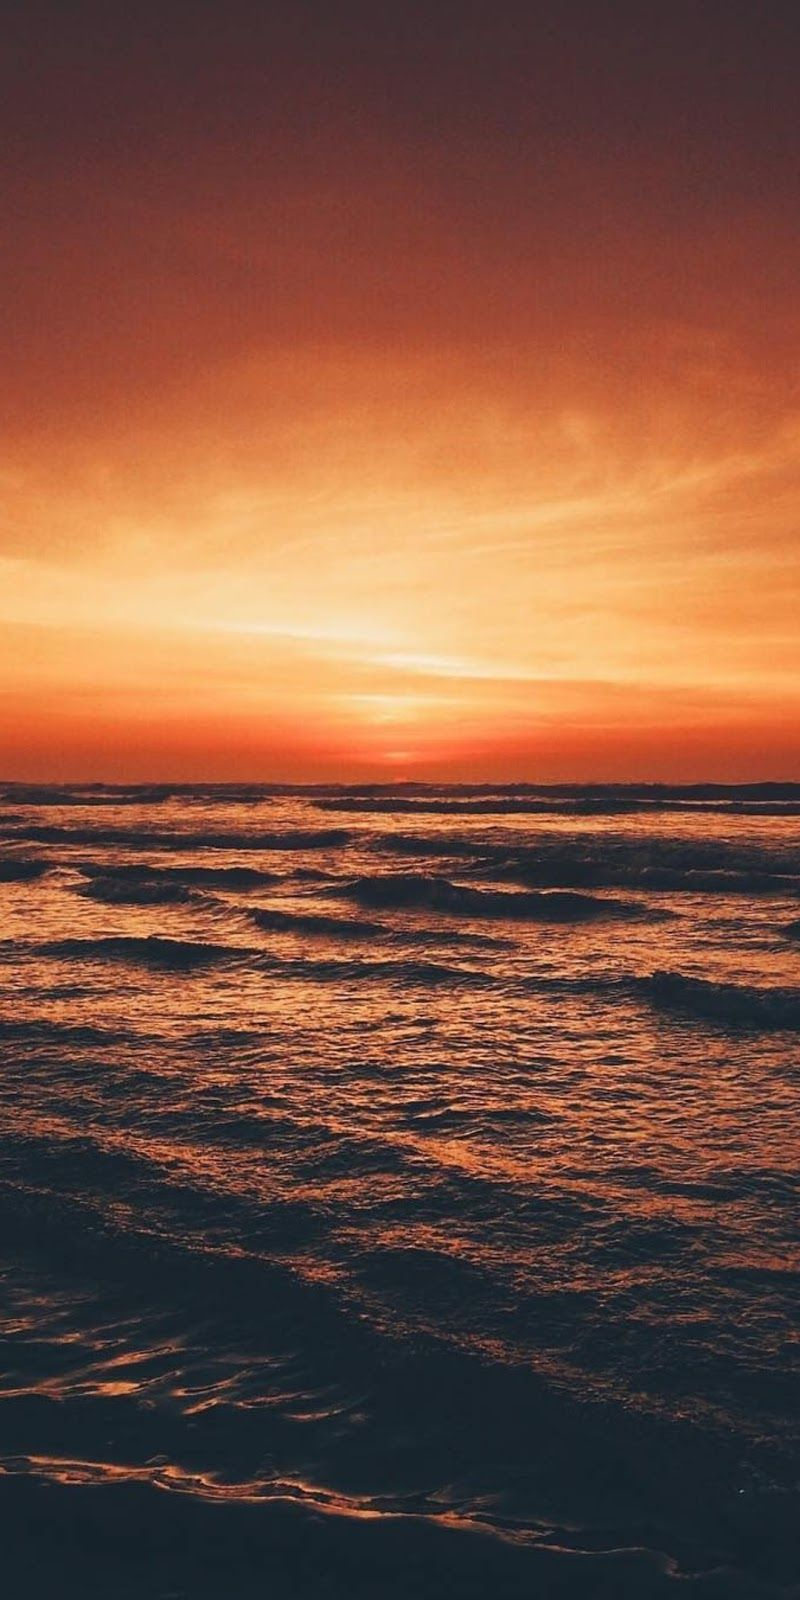 Beach In The Sunset In 2020 Sunset Wallpaper Beautiful Scenery Photography Night Sky Wallpaper